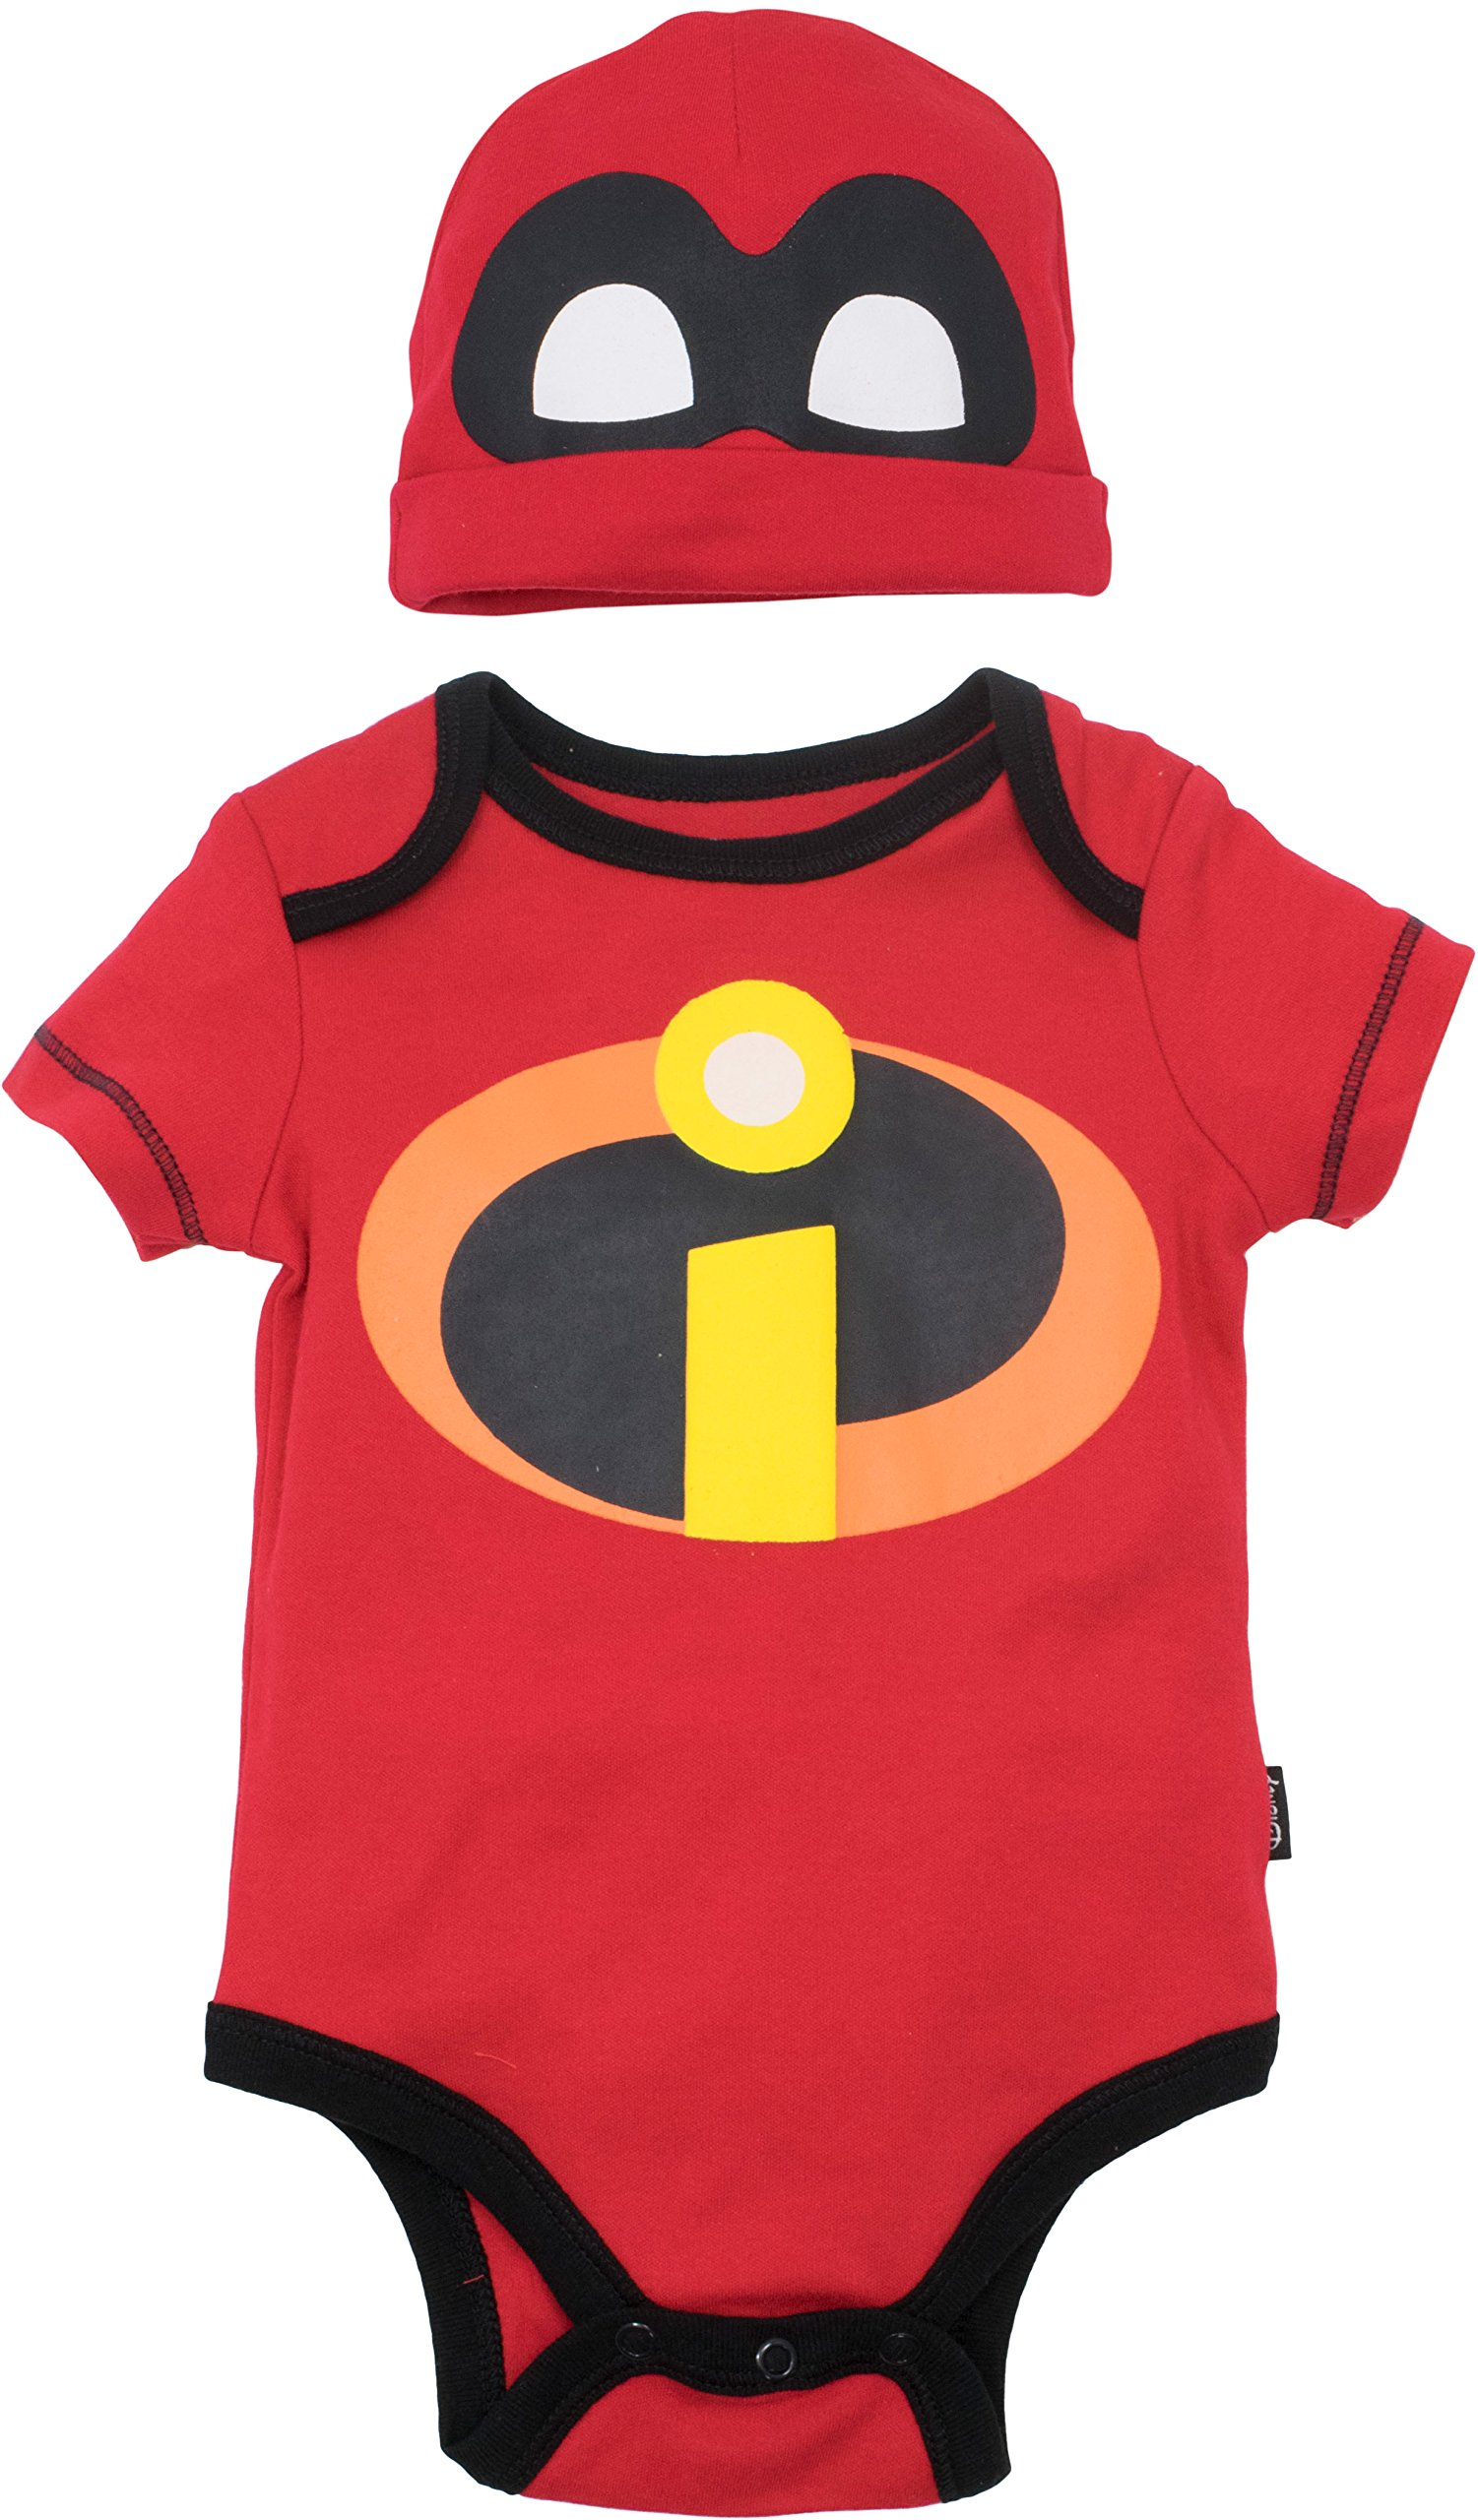 Disney Pixar The Incredibles Baby Costume Bodysuit and Hat Red (3-6 Months)